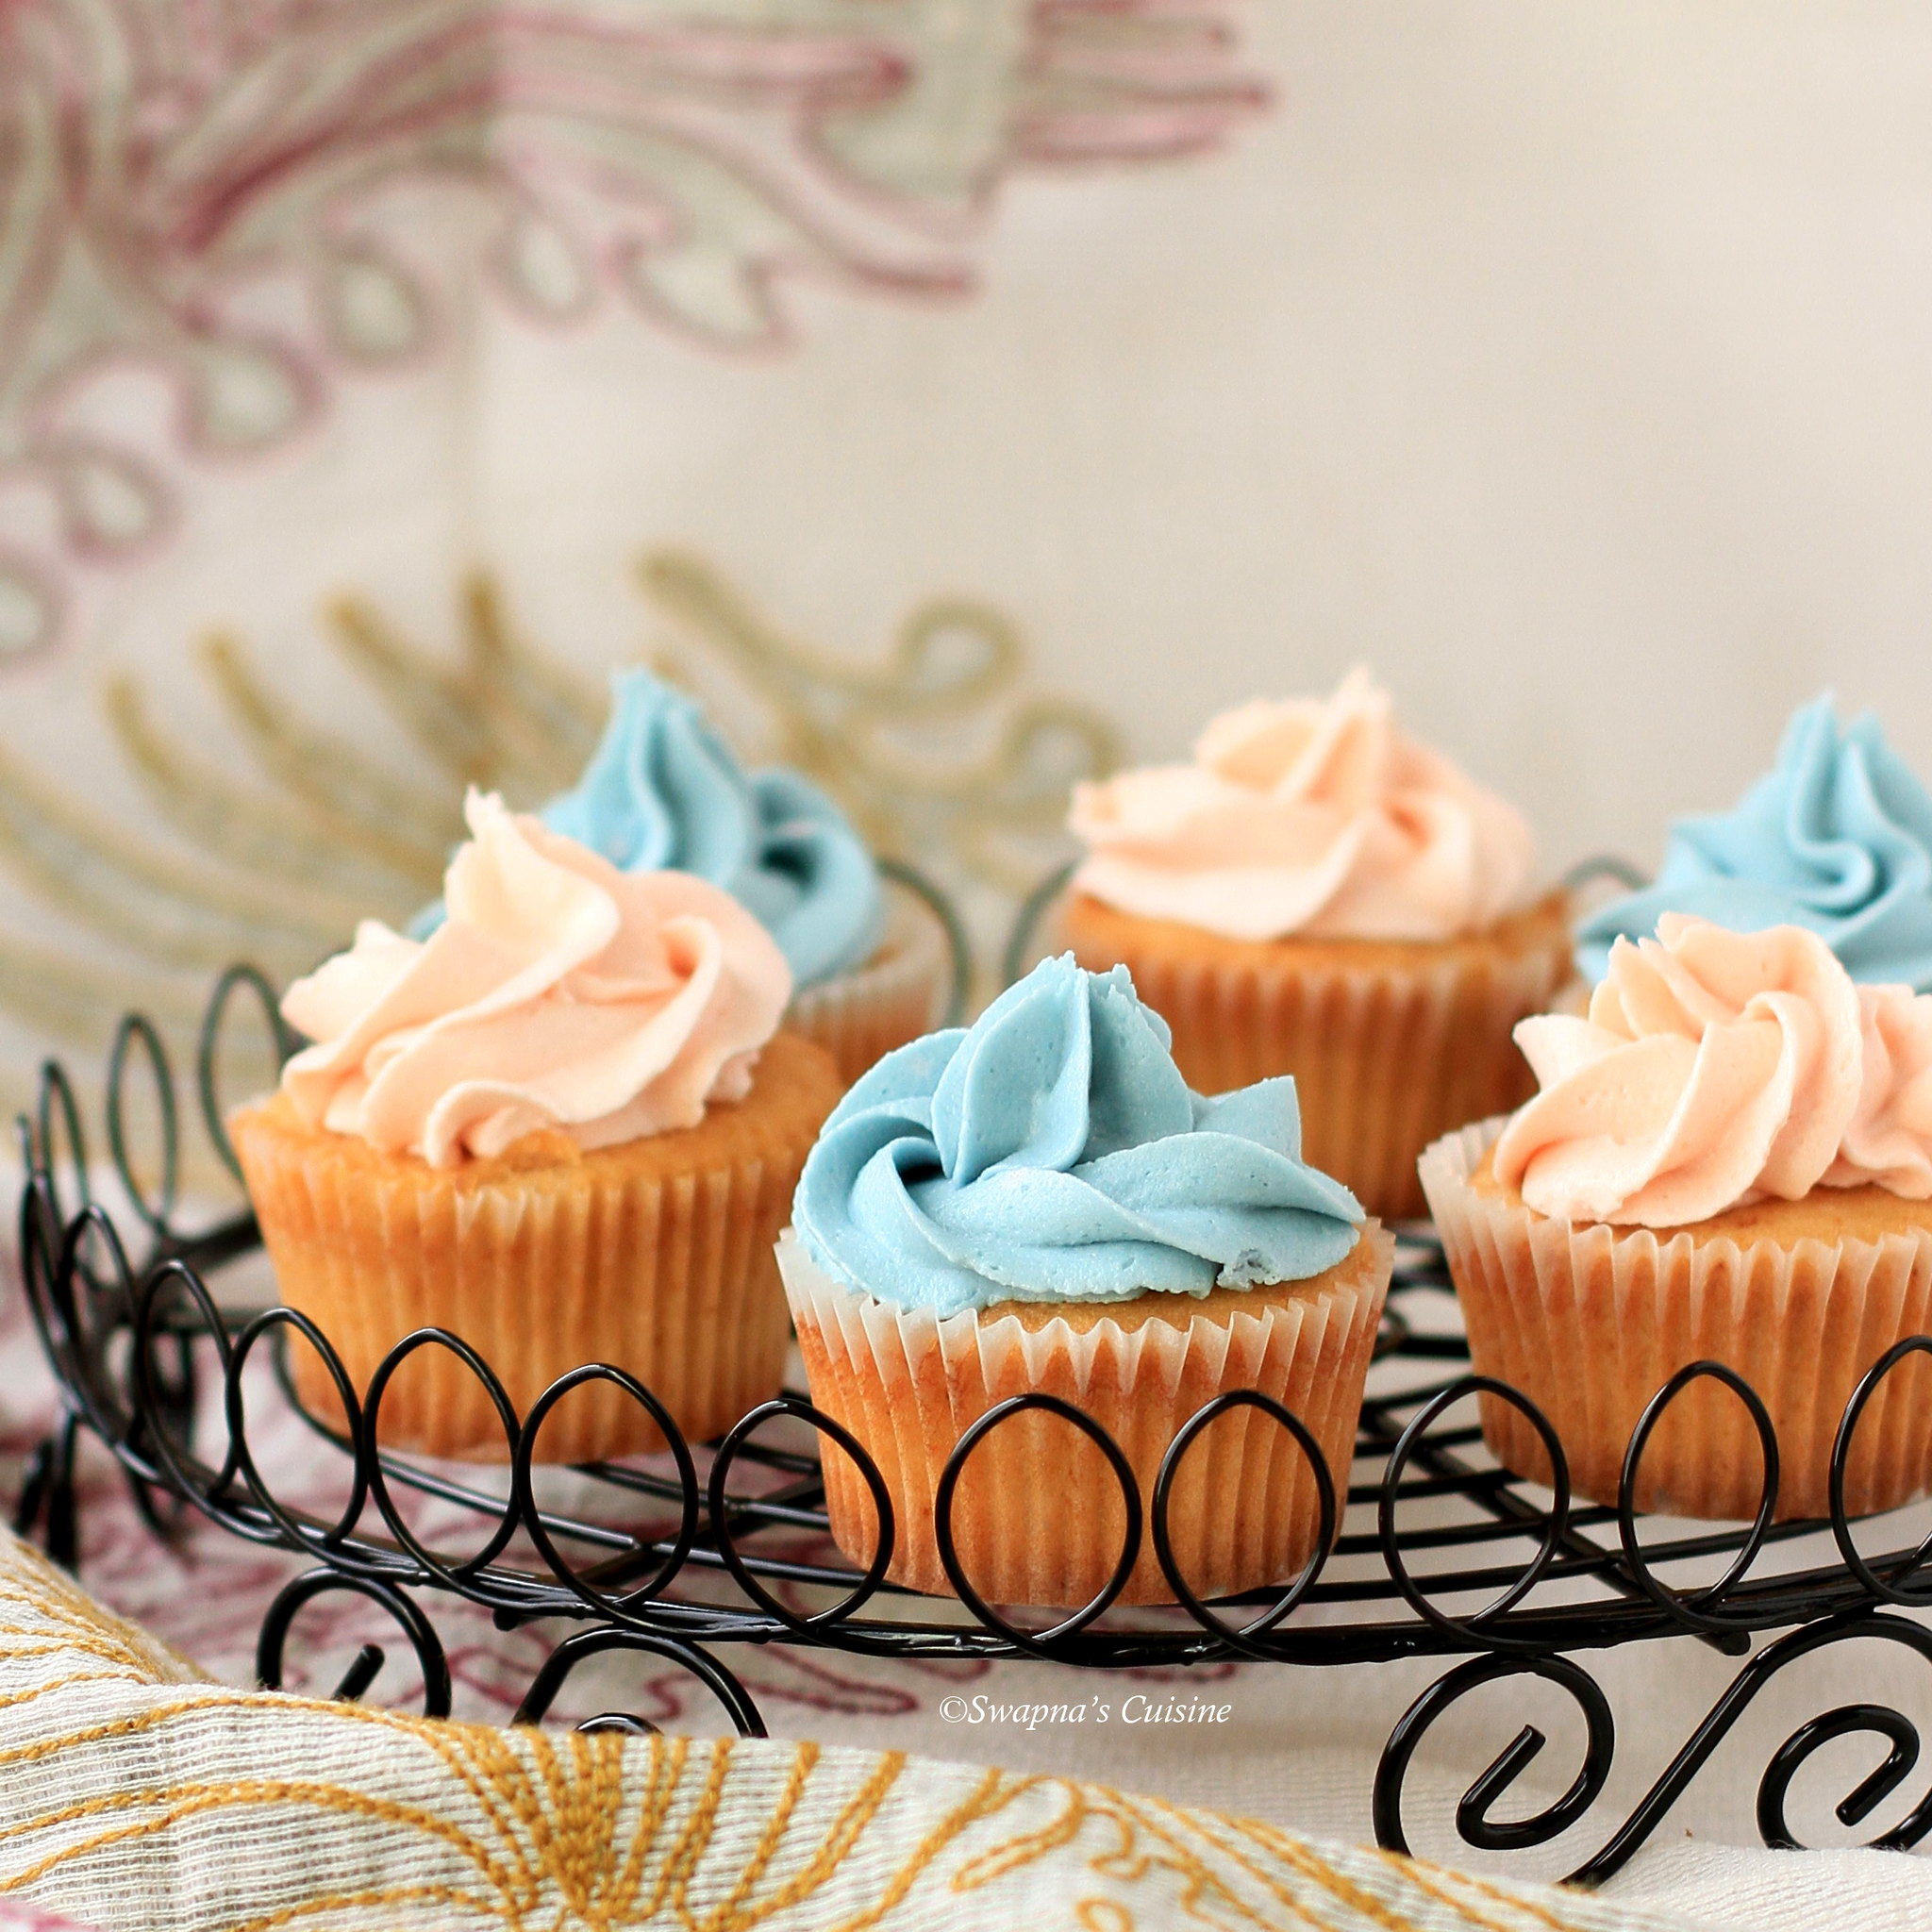 Dulce de Leche Cupcakes with Buttercream Frosting